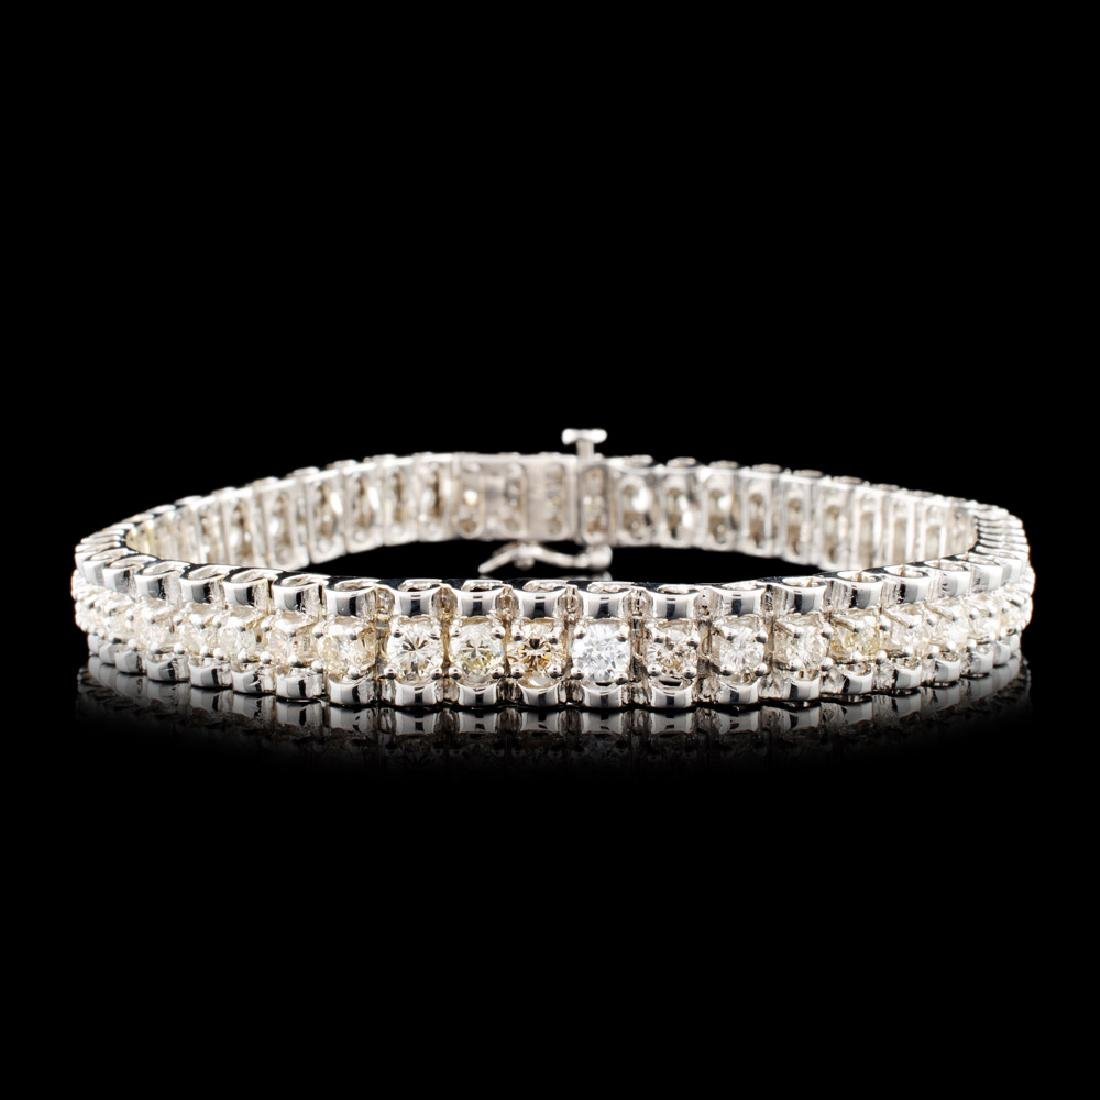 14K Gold 3.31ctw Diamond Bracelet